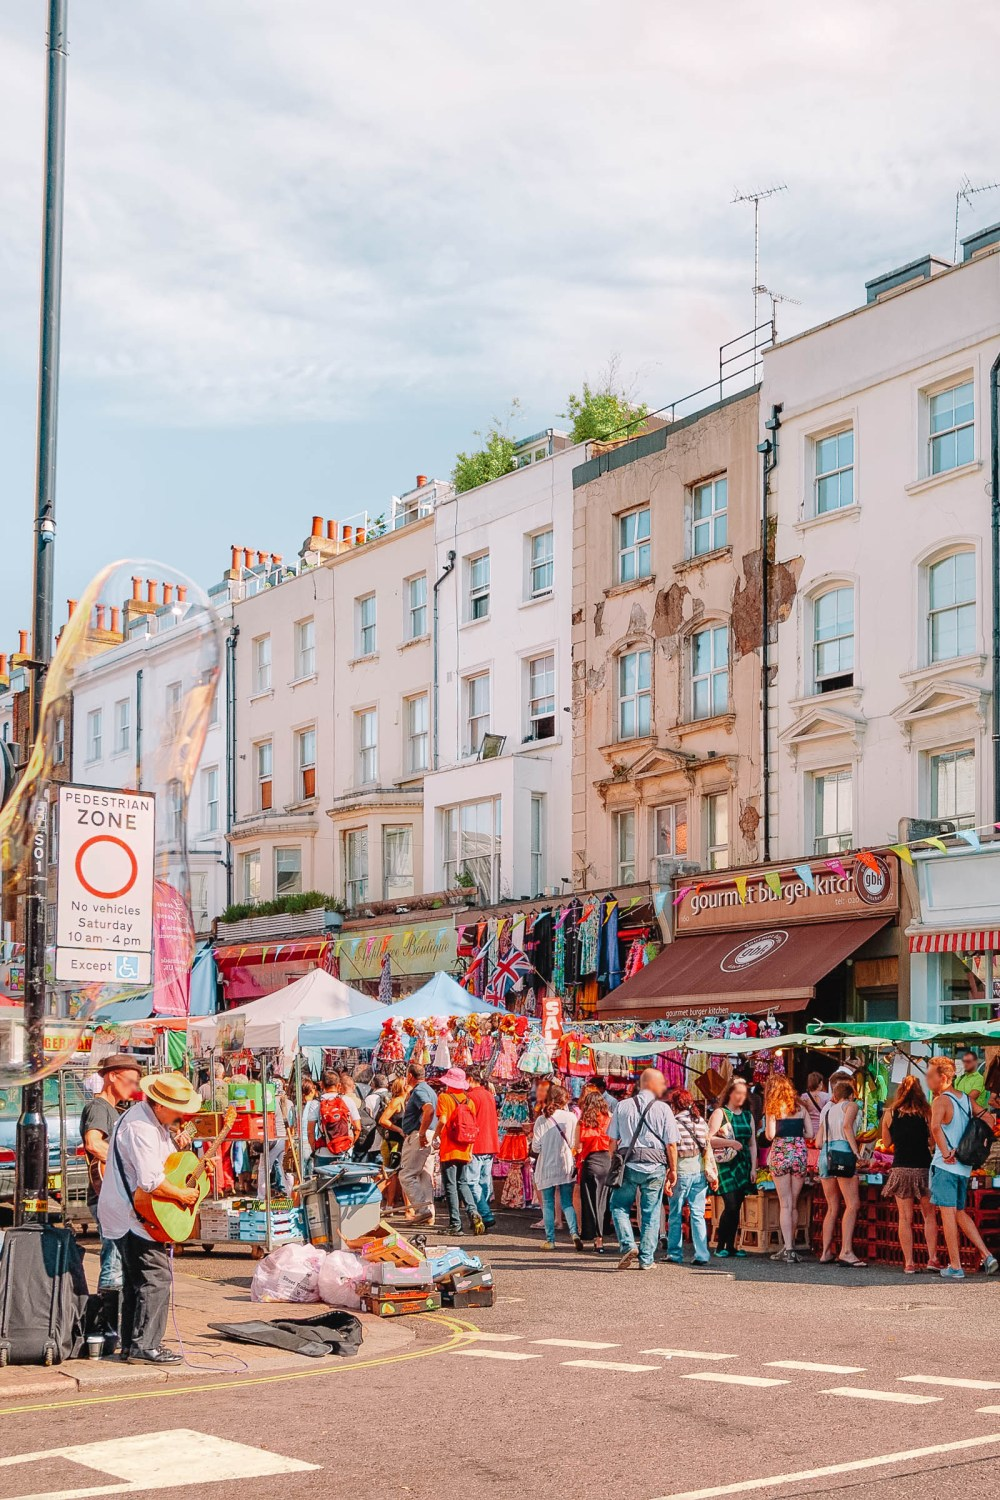 Portobello Street Market in West London